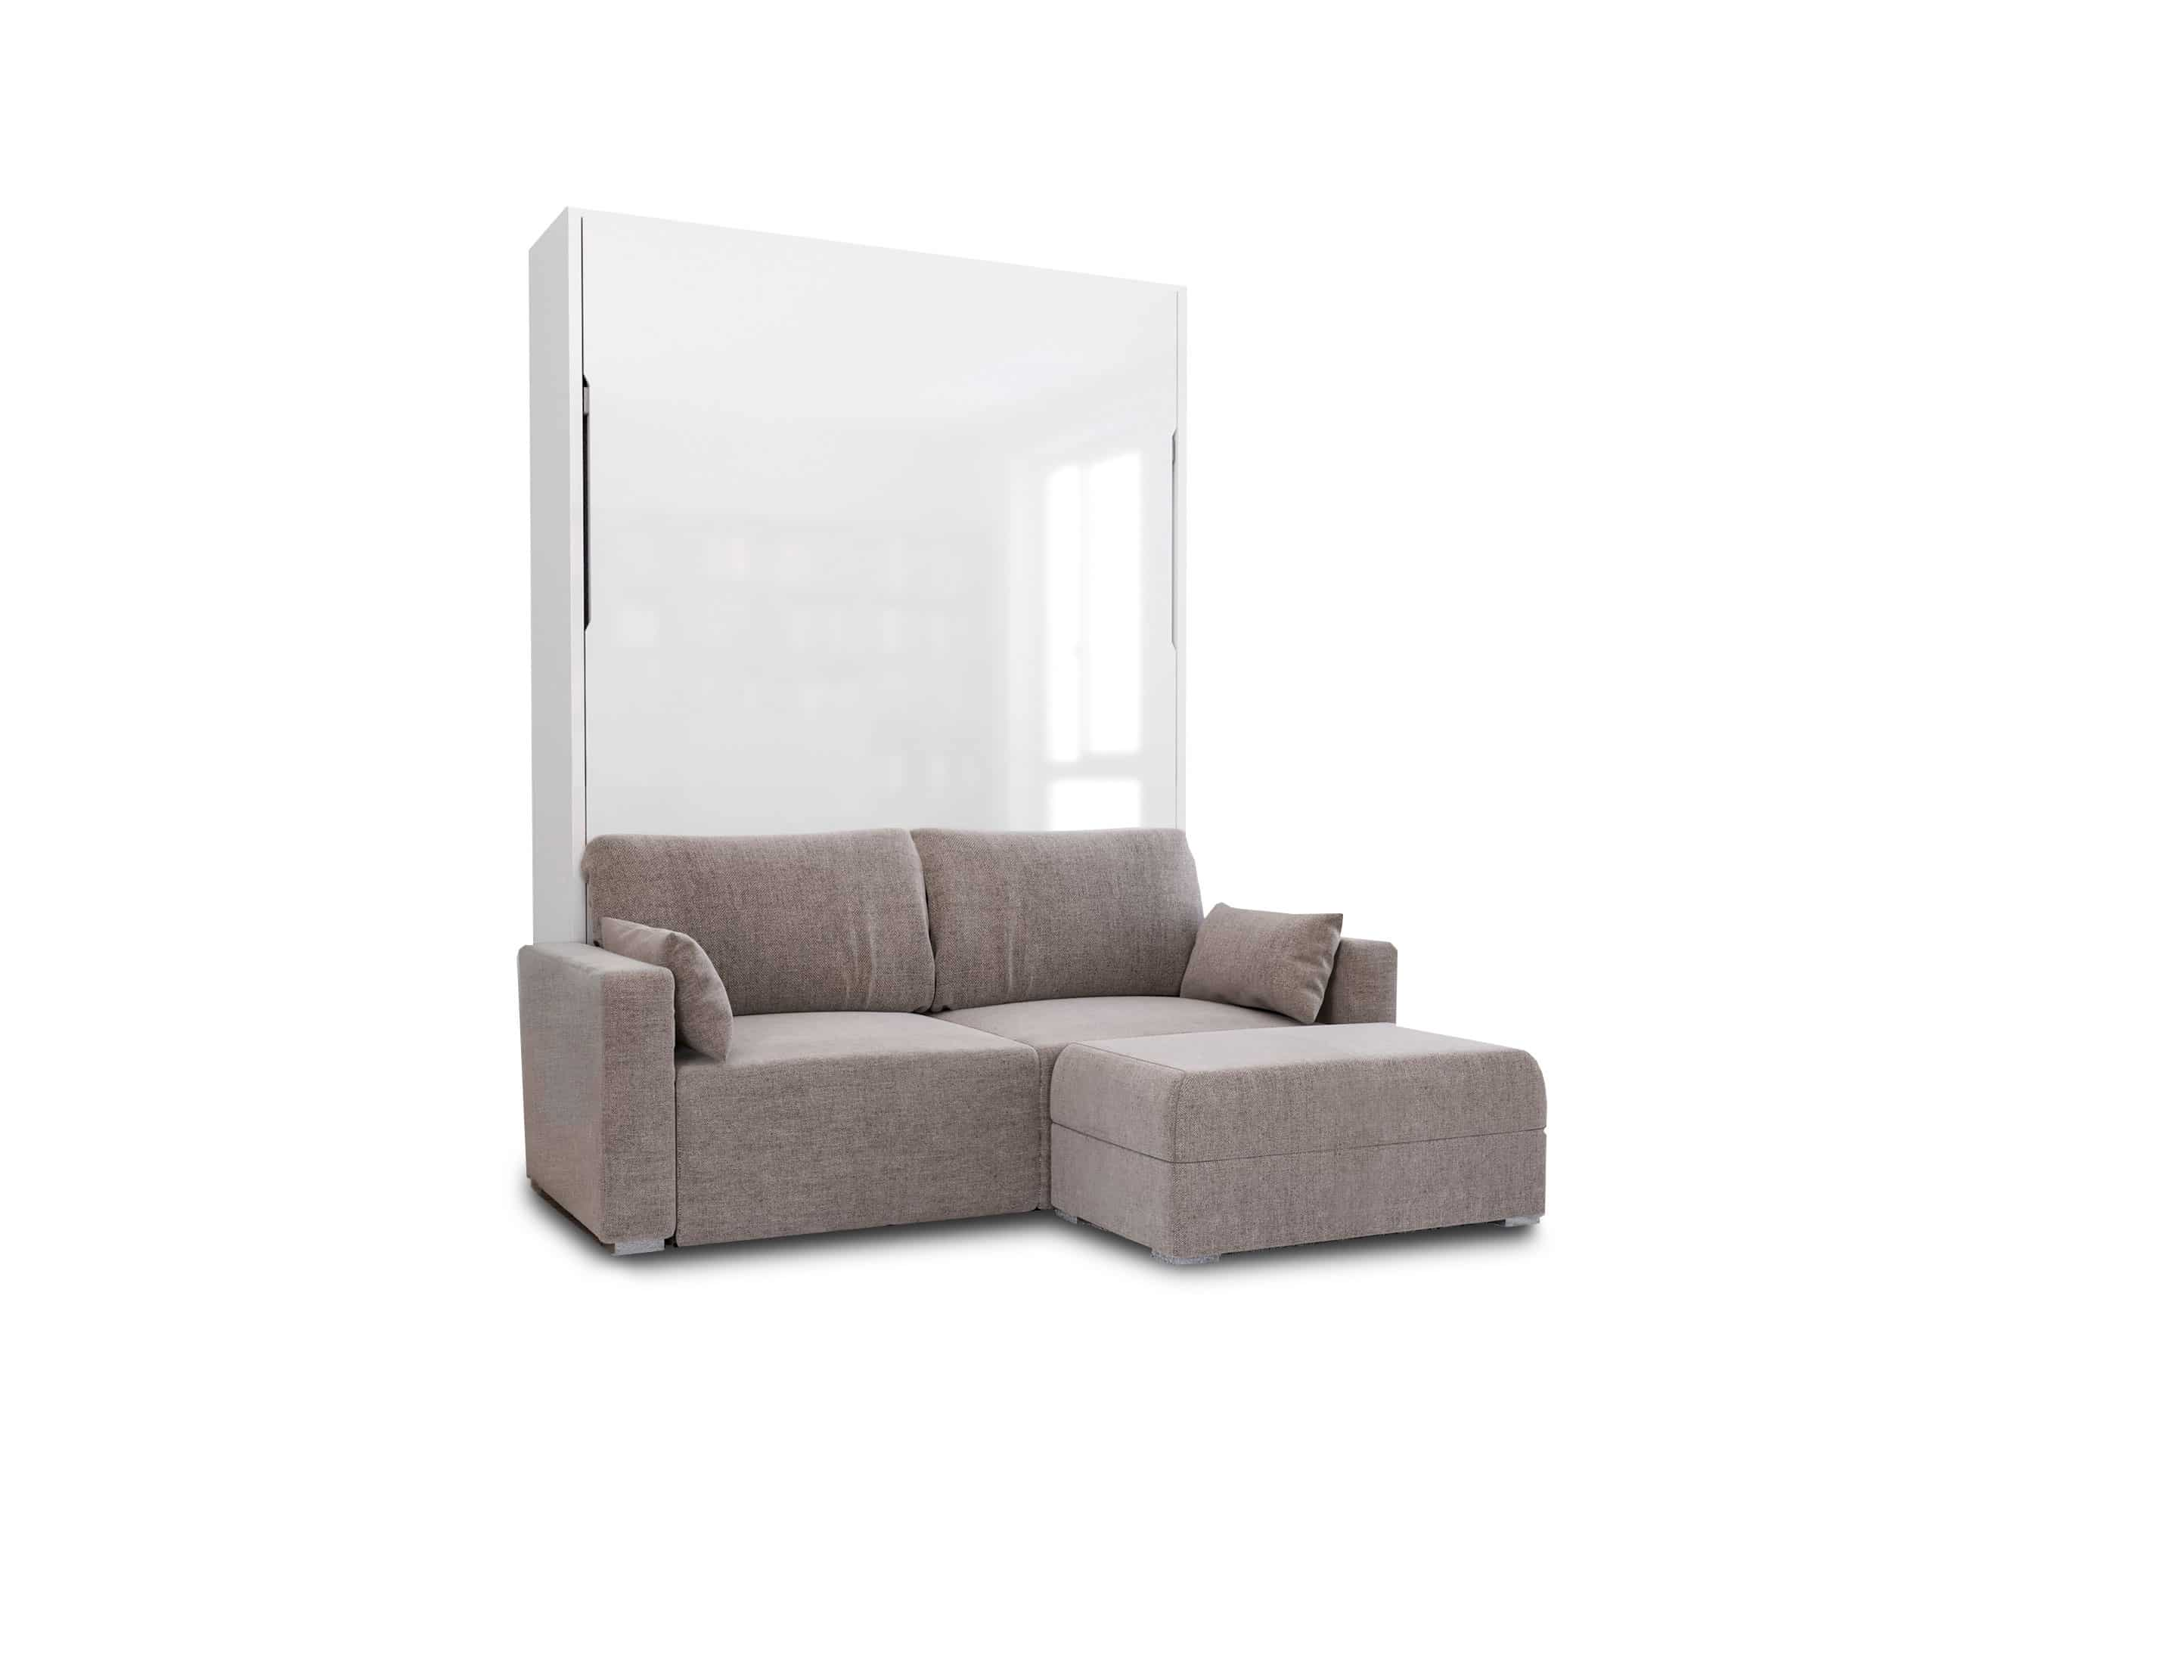 Picture of: Murphysofa Minima Queen Mini Sectional Expand Furniture Folding Tables Smarter Wall Beds Space Savers